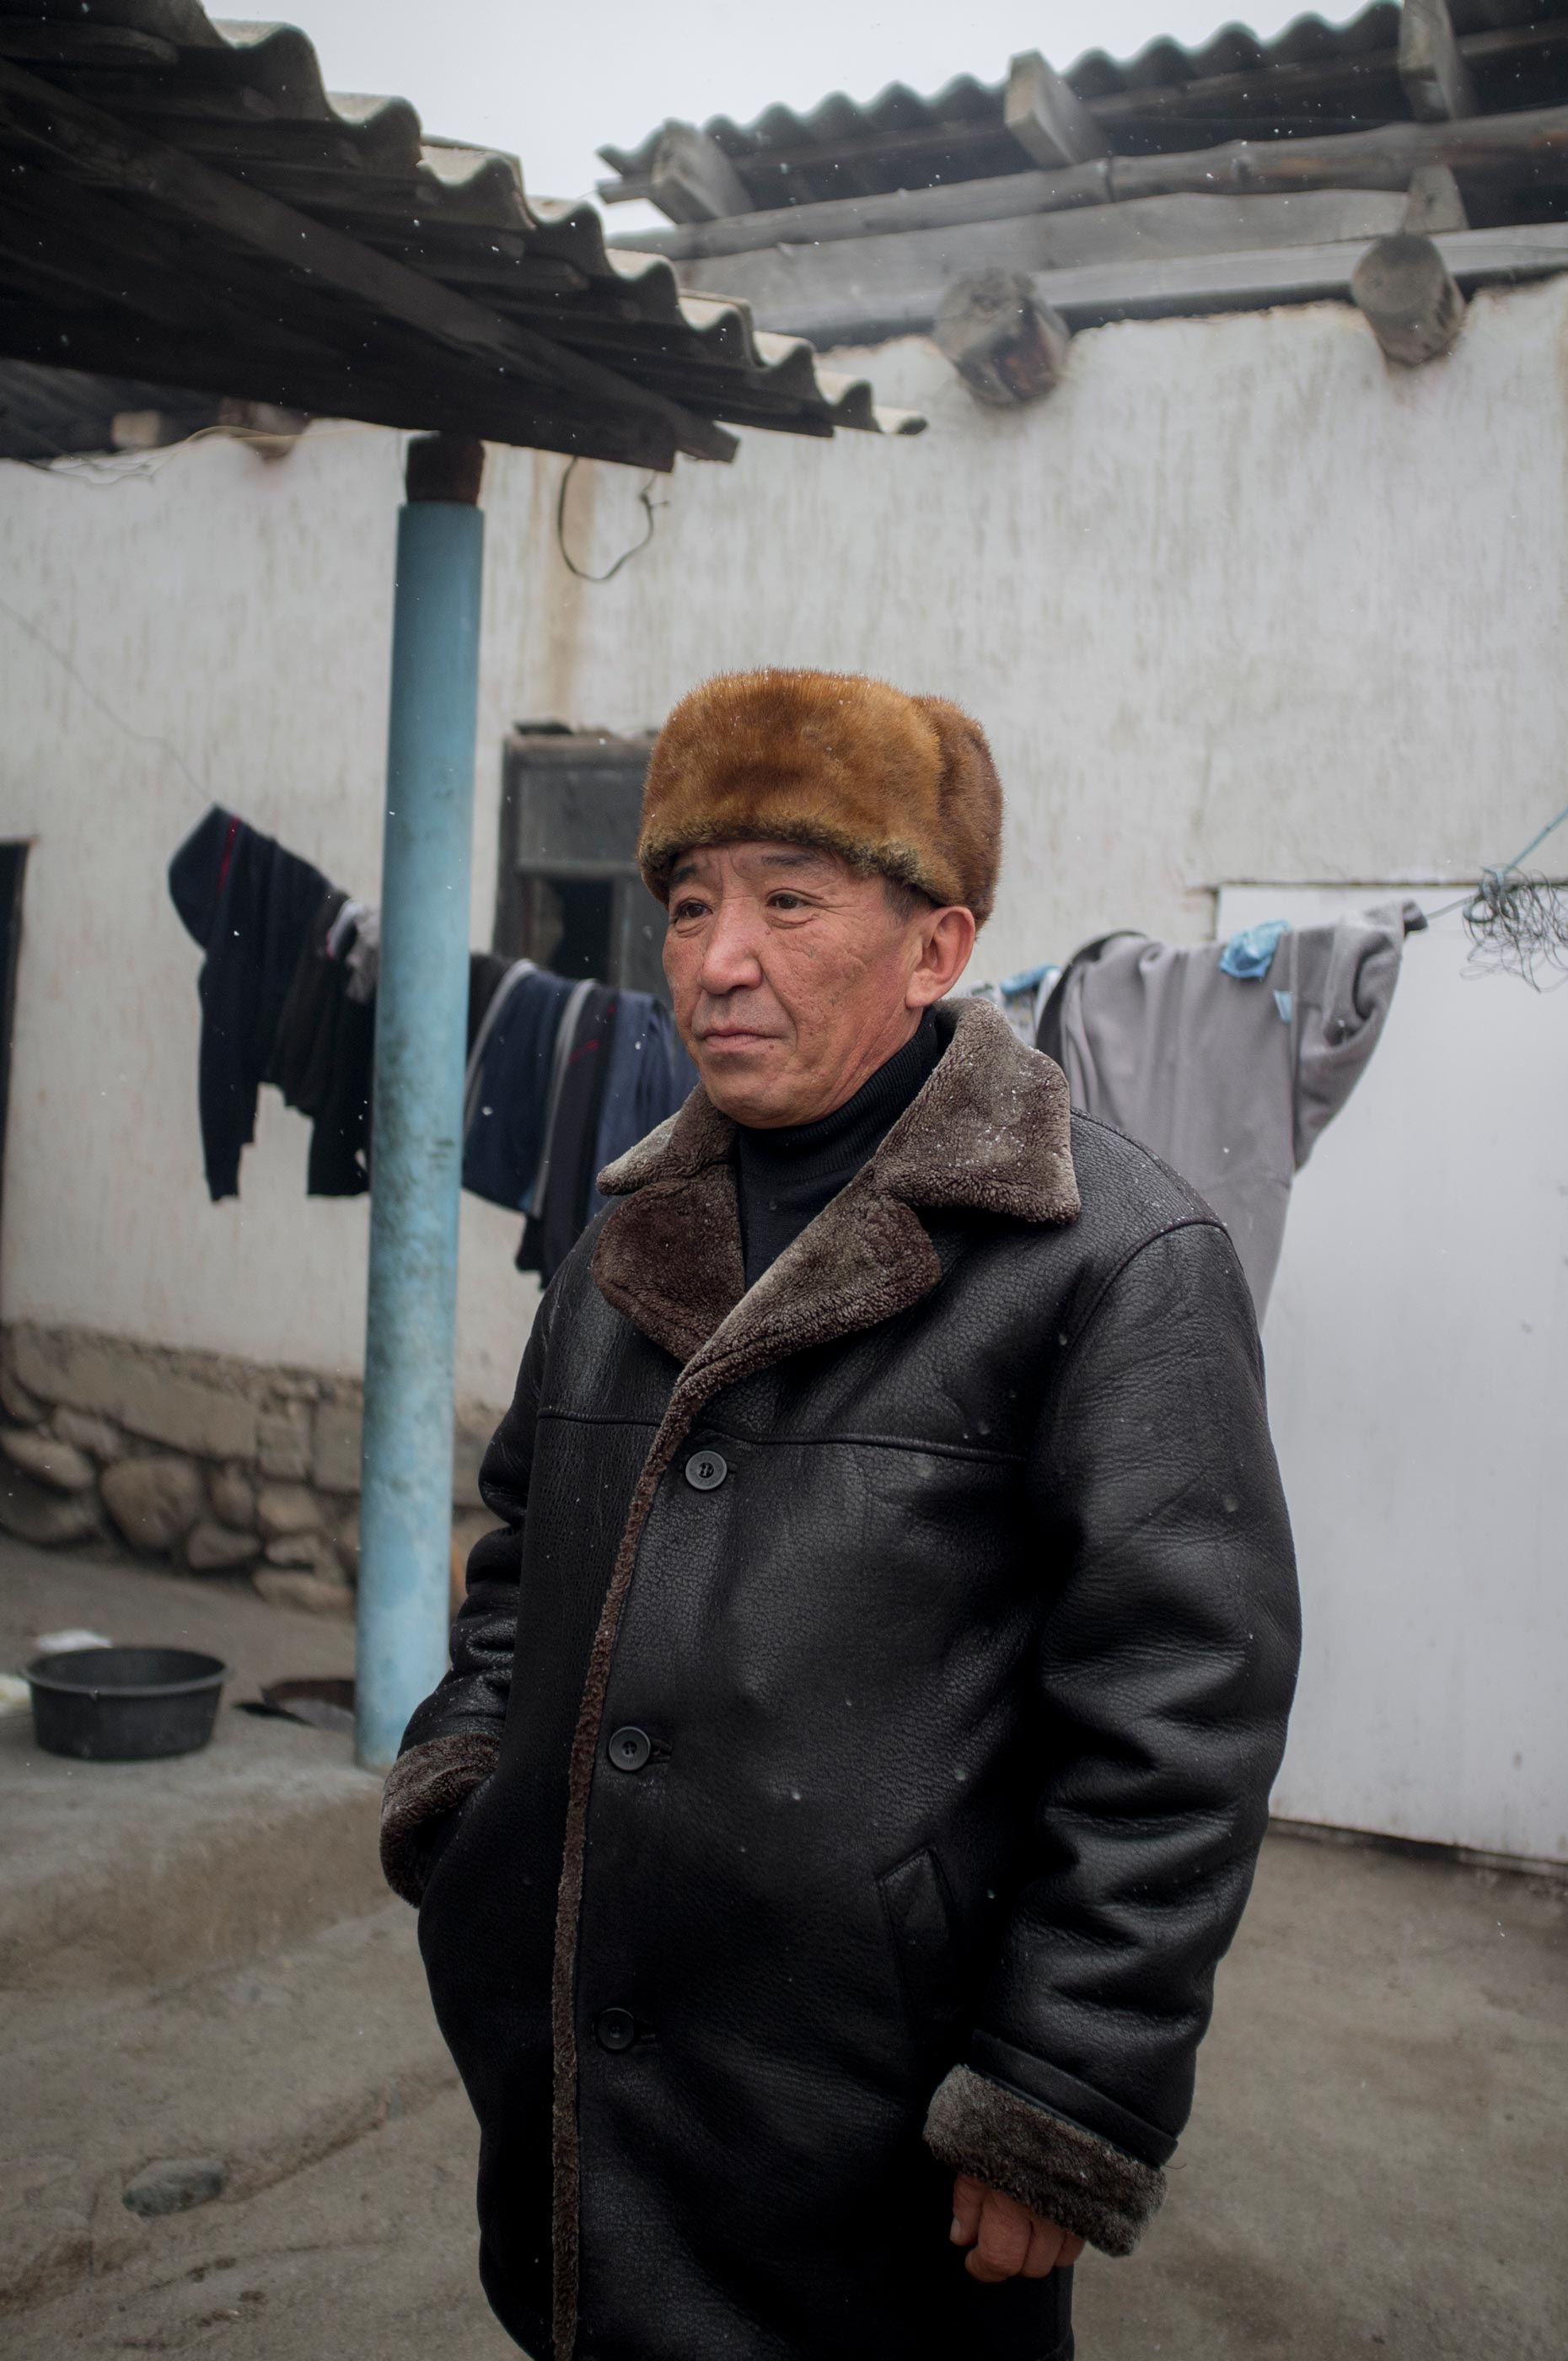 A Kyrgyz man stands in a yard in Min Kush, Kyrgyzstan